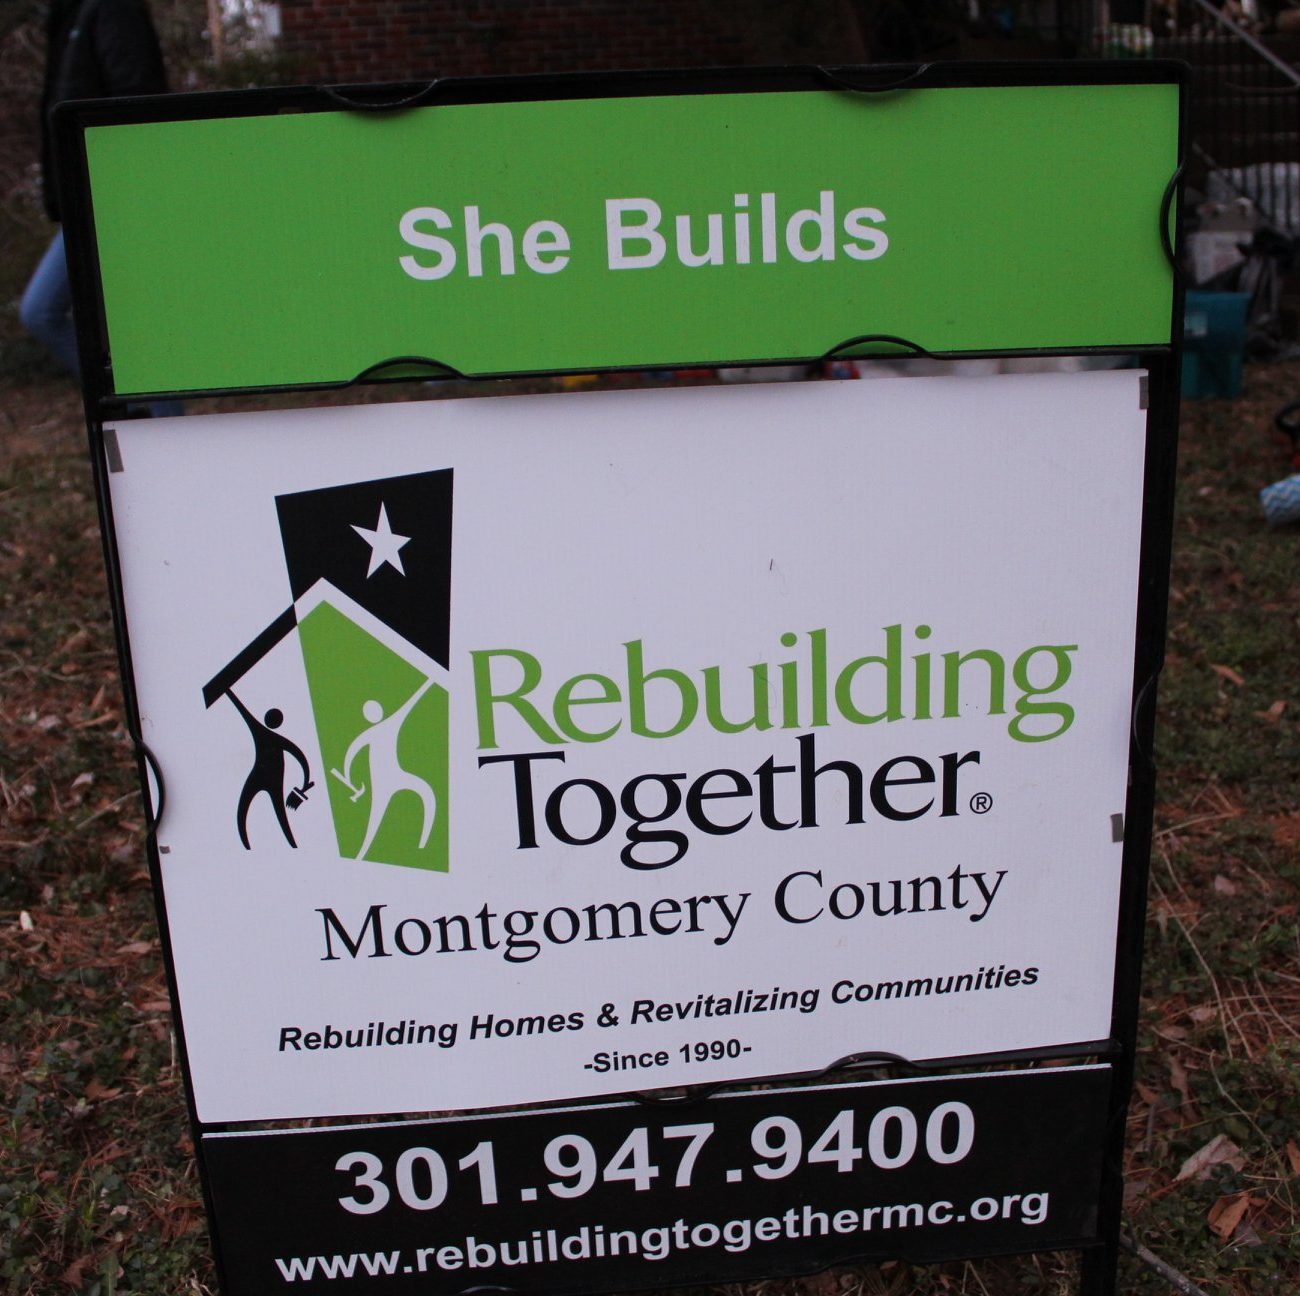 SheBuilds Sponsored by ABC Washington Metro in Partnership with Rebuilding Together Montgomery County